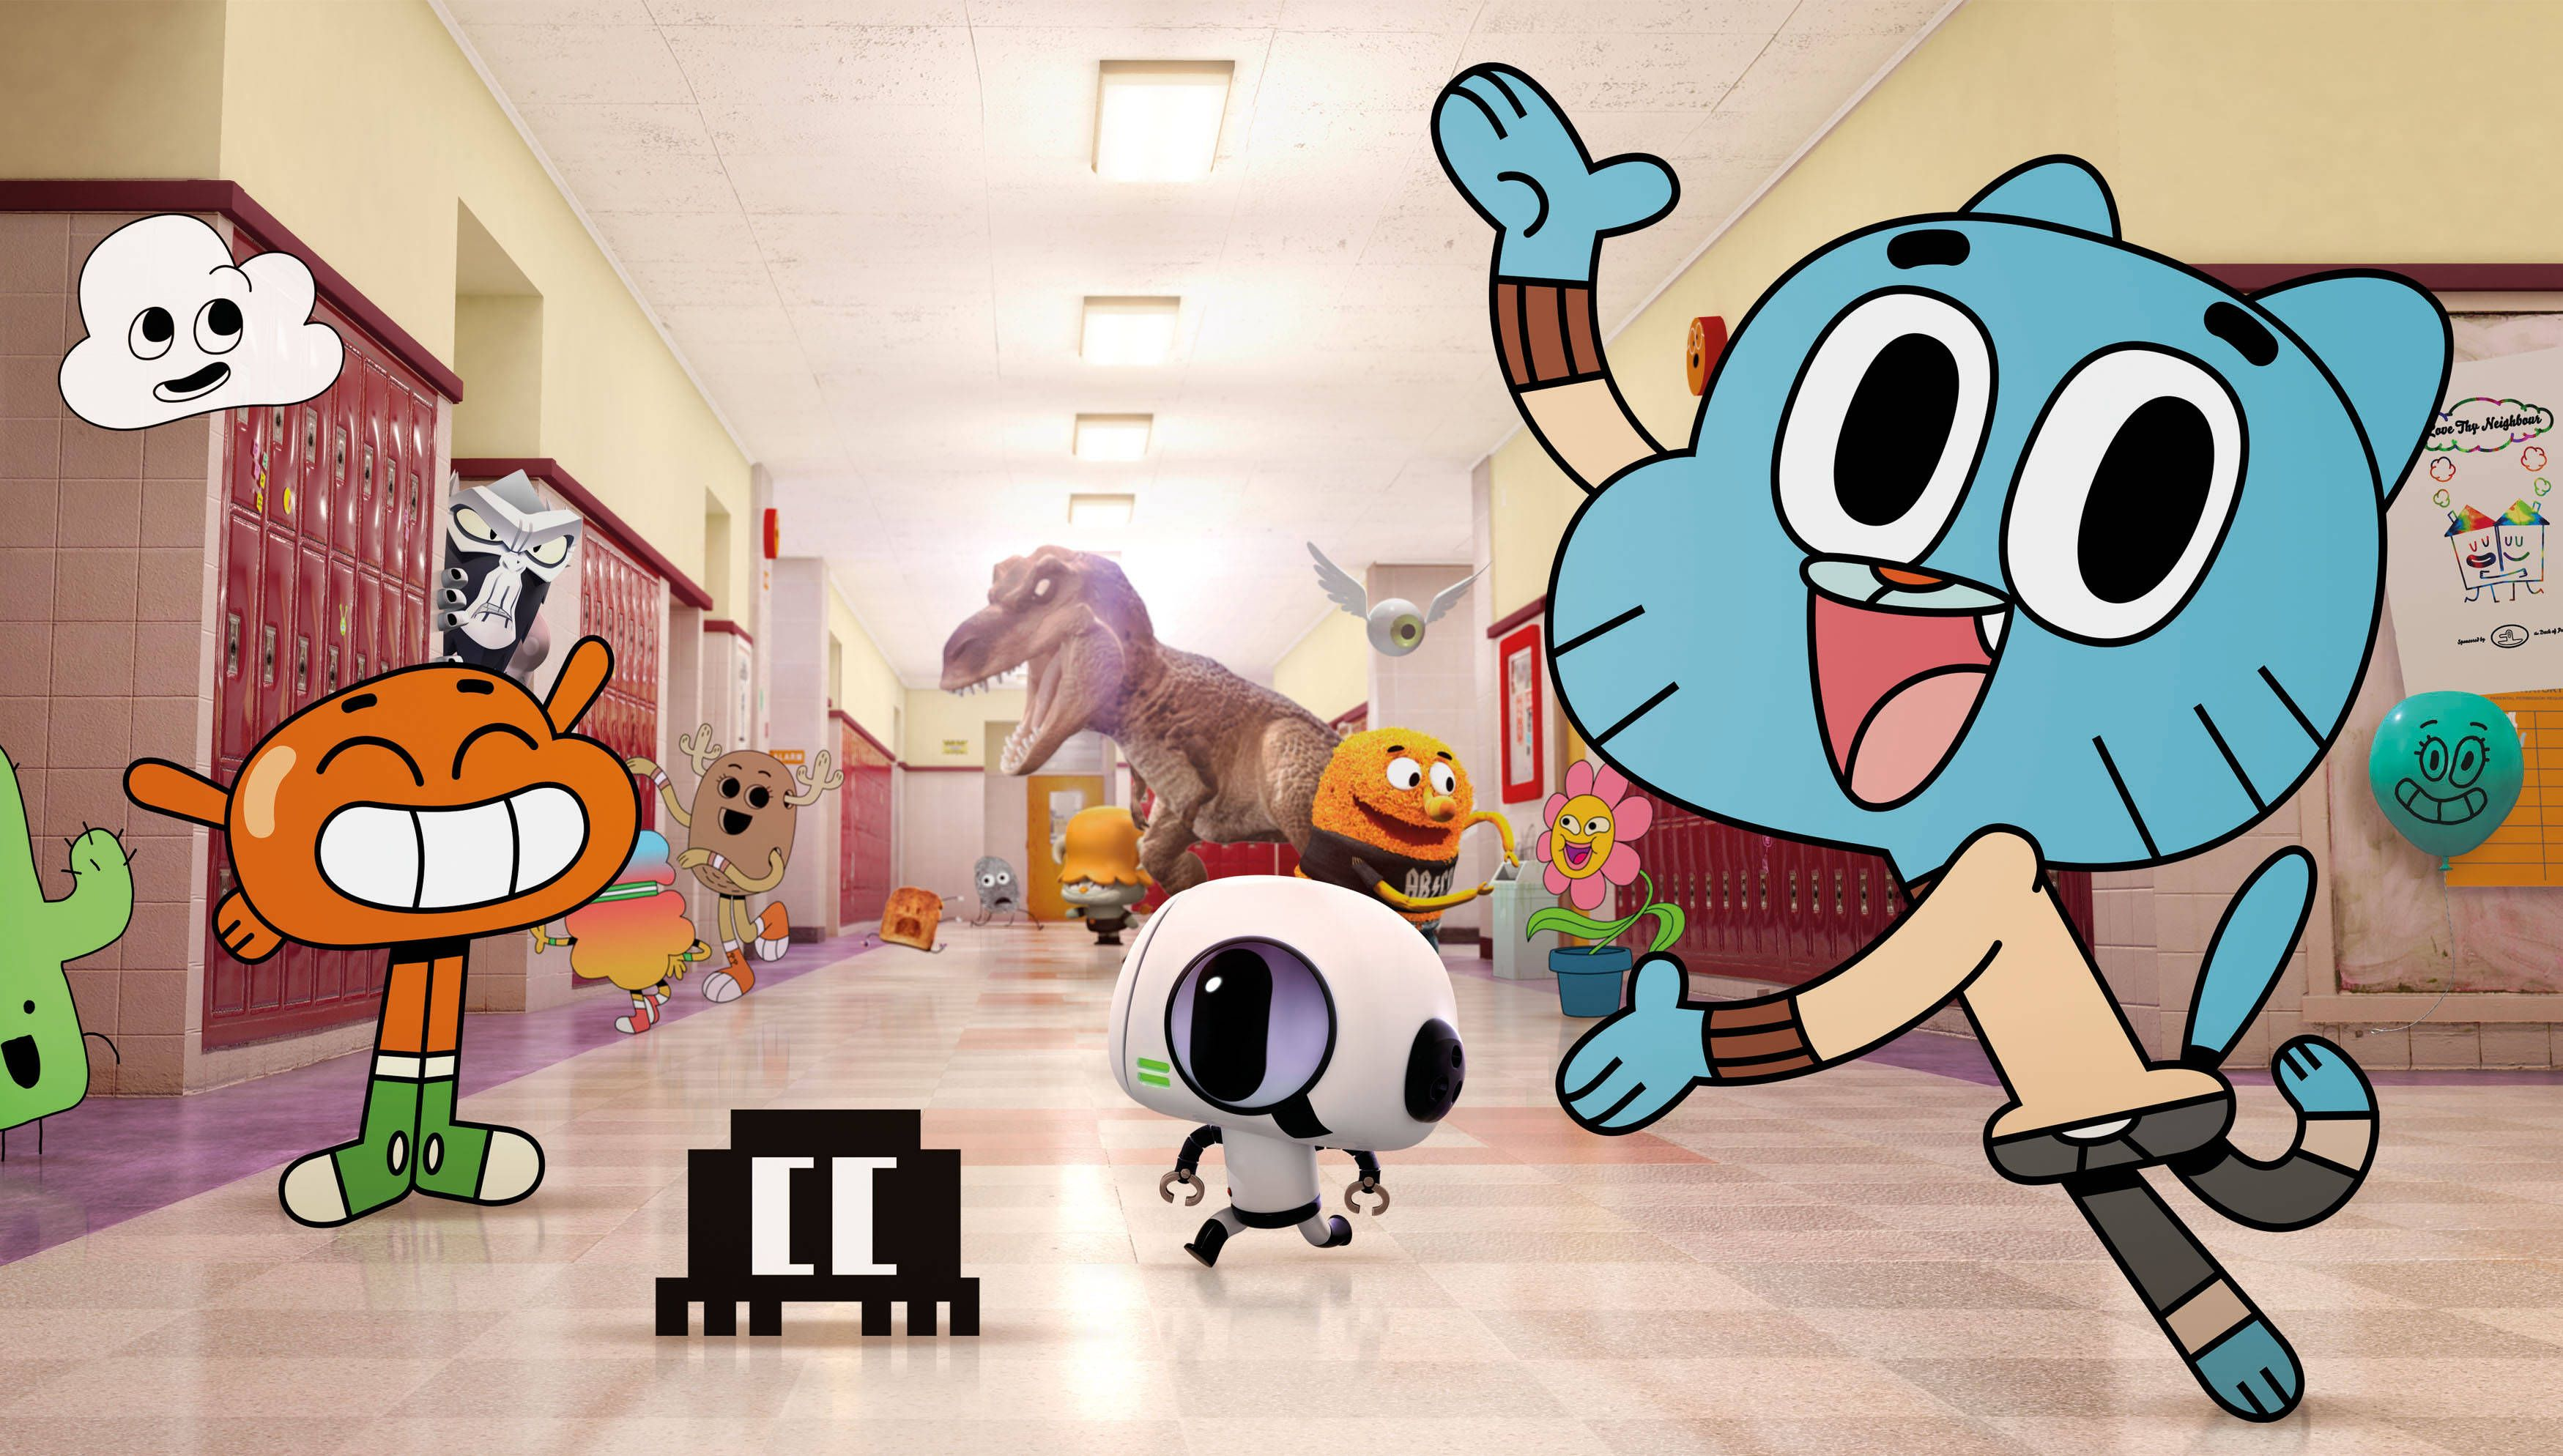 Review: The Amazing World Of Gumball 'The Gift' – Bubbleblabber